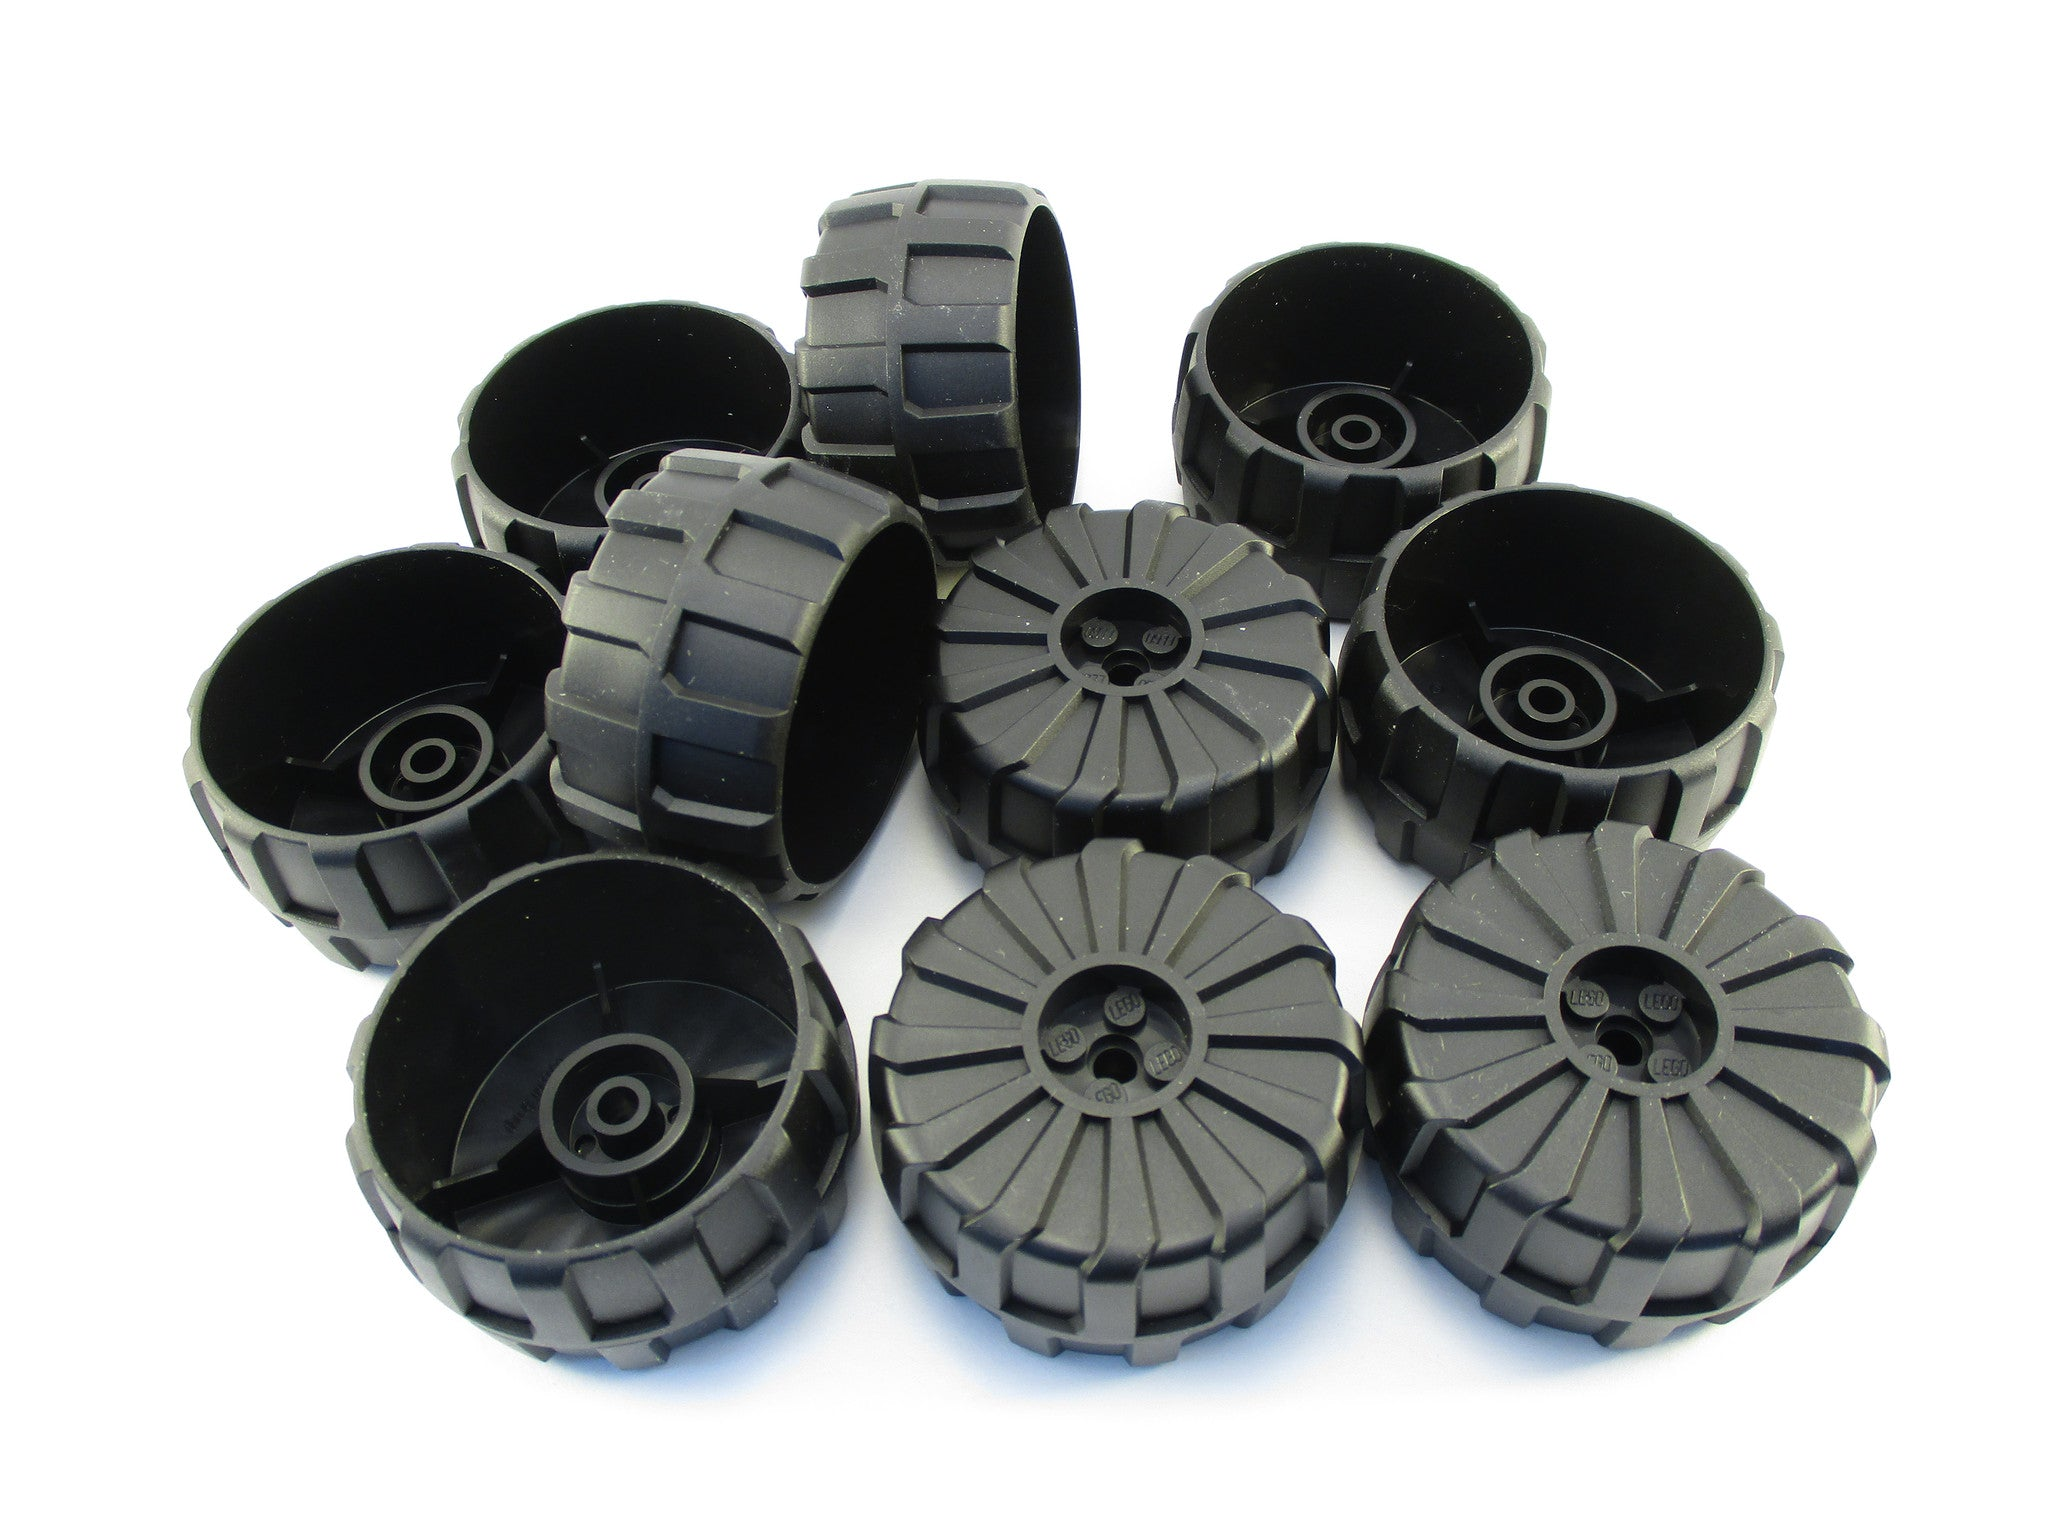 LEGO Black Wheel Hard Plastic Large 54mm D. x 30mm Lot of 10 Parts Pieces 2515